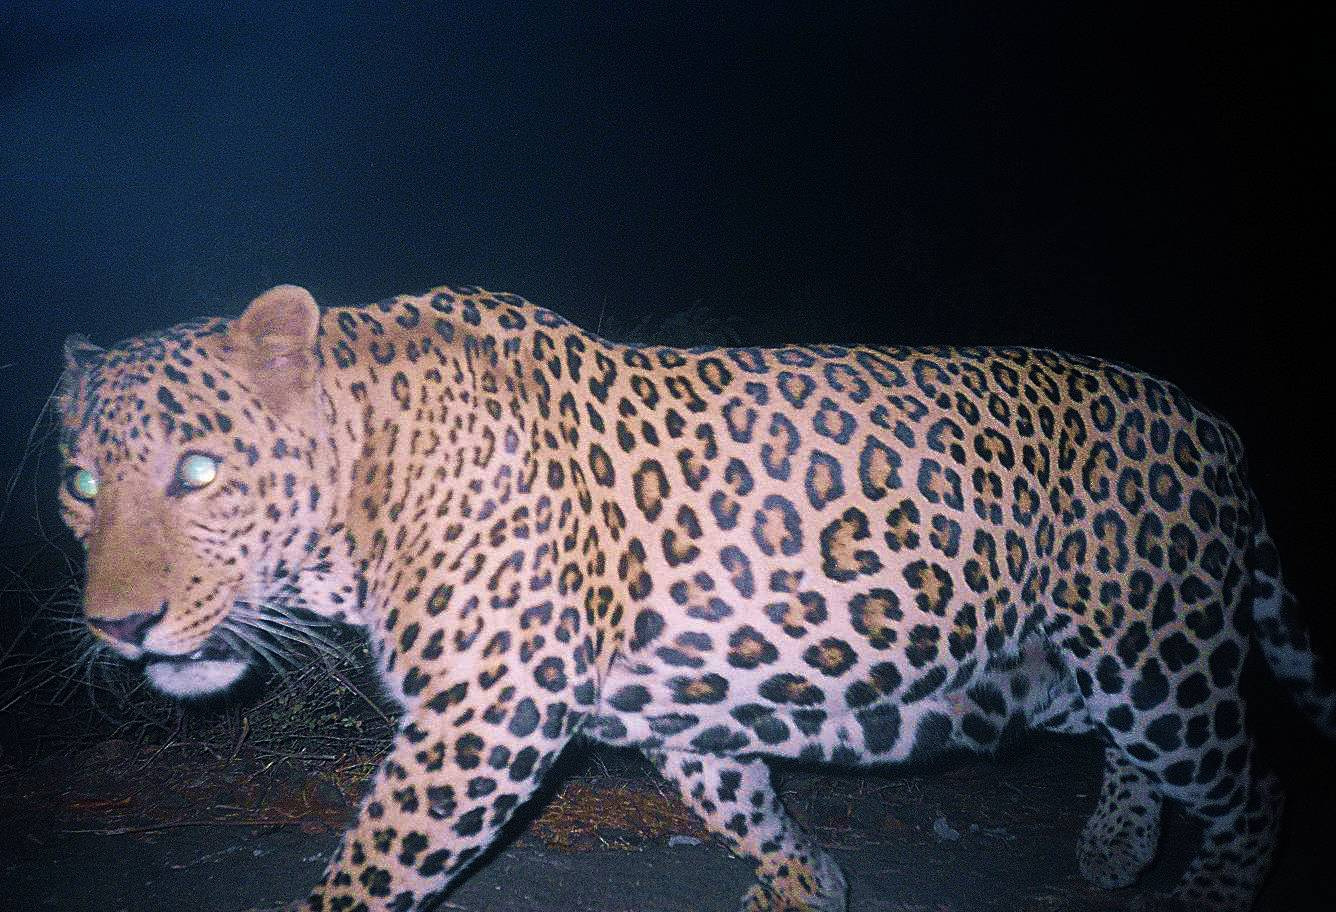 A classic example of a camera trap photo, as the leopard crosses the camera's view, it takes several images.